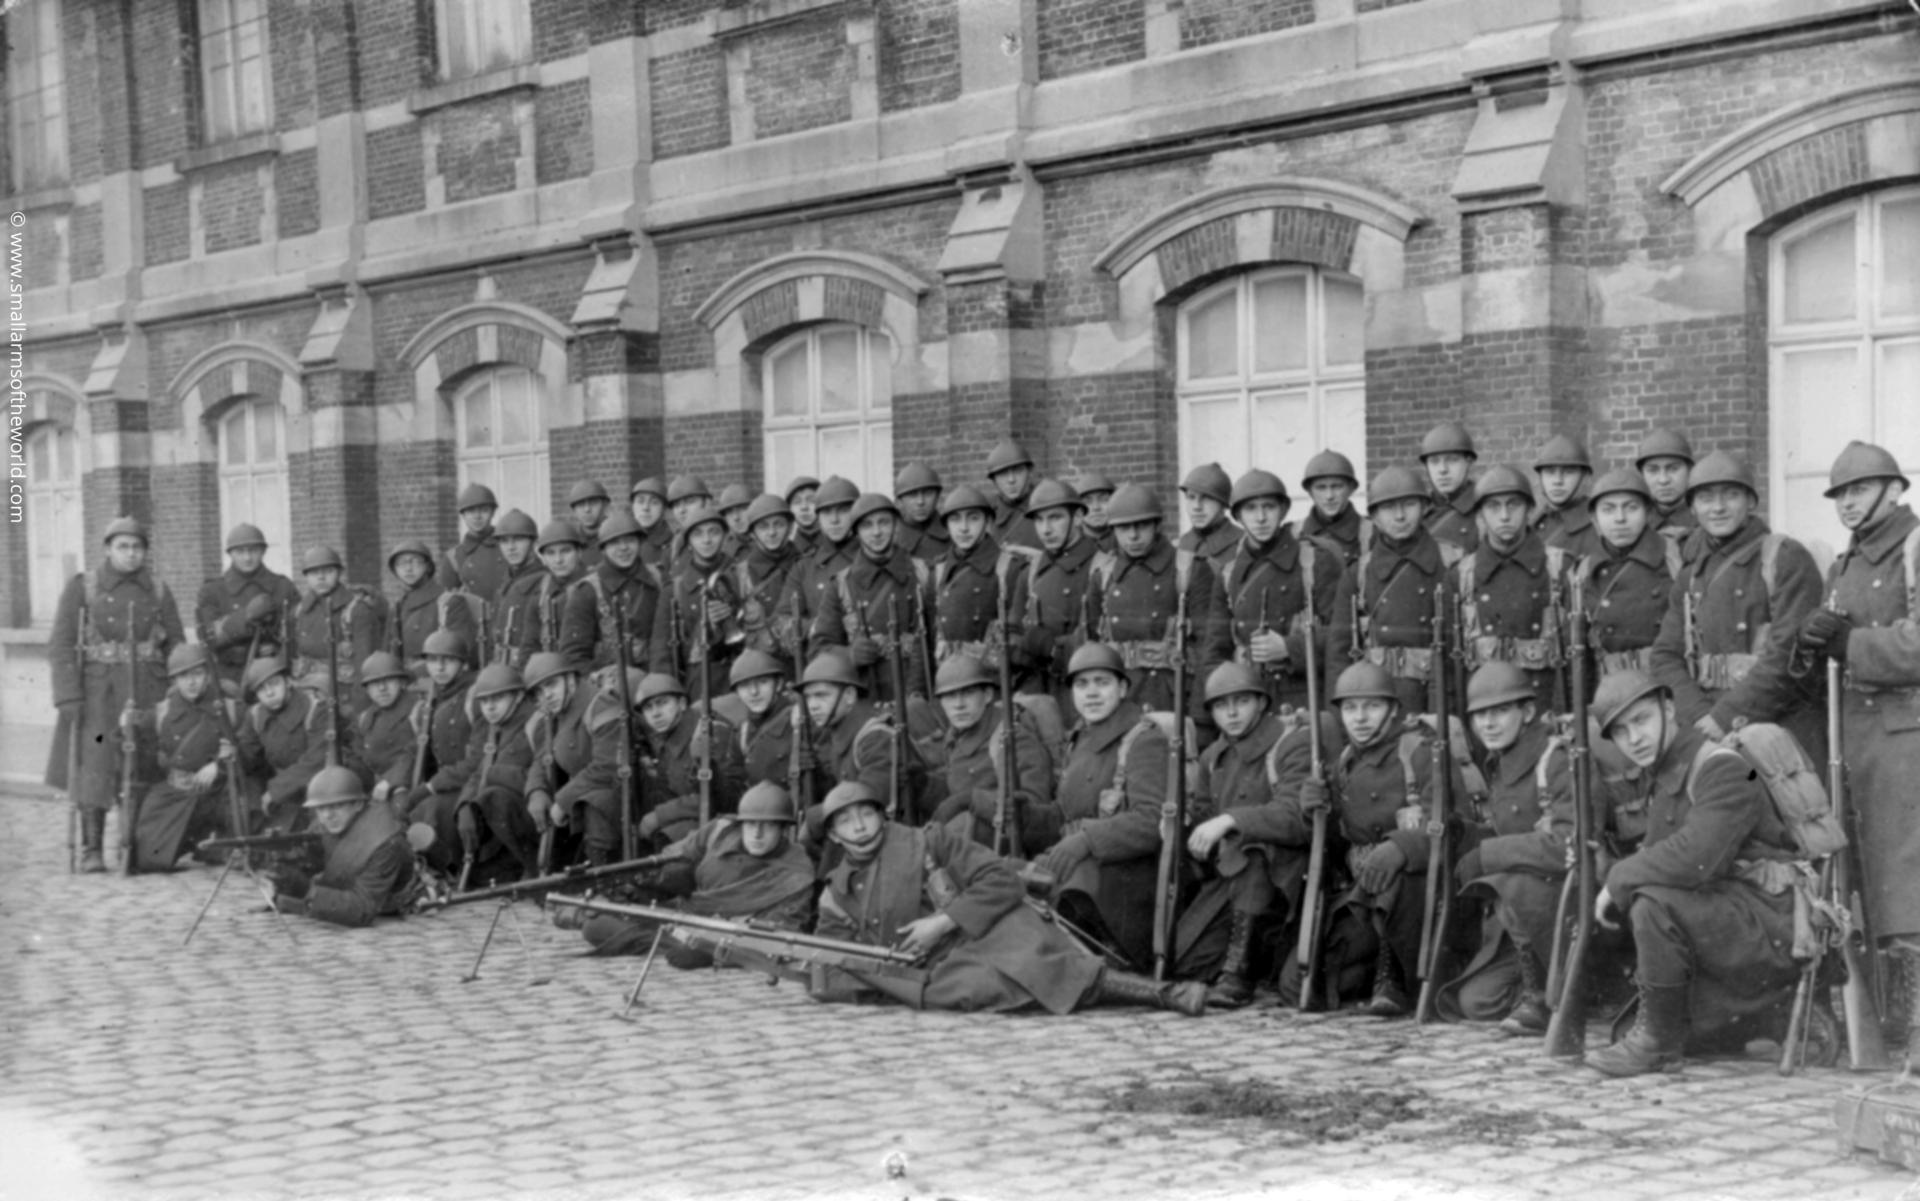 """""""Belgian soldiers with three Chauchat machine guns and Model 1889 rifles. This picture was taken after the men had been in the army for five months, presumably in the early 1920's."""""""